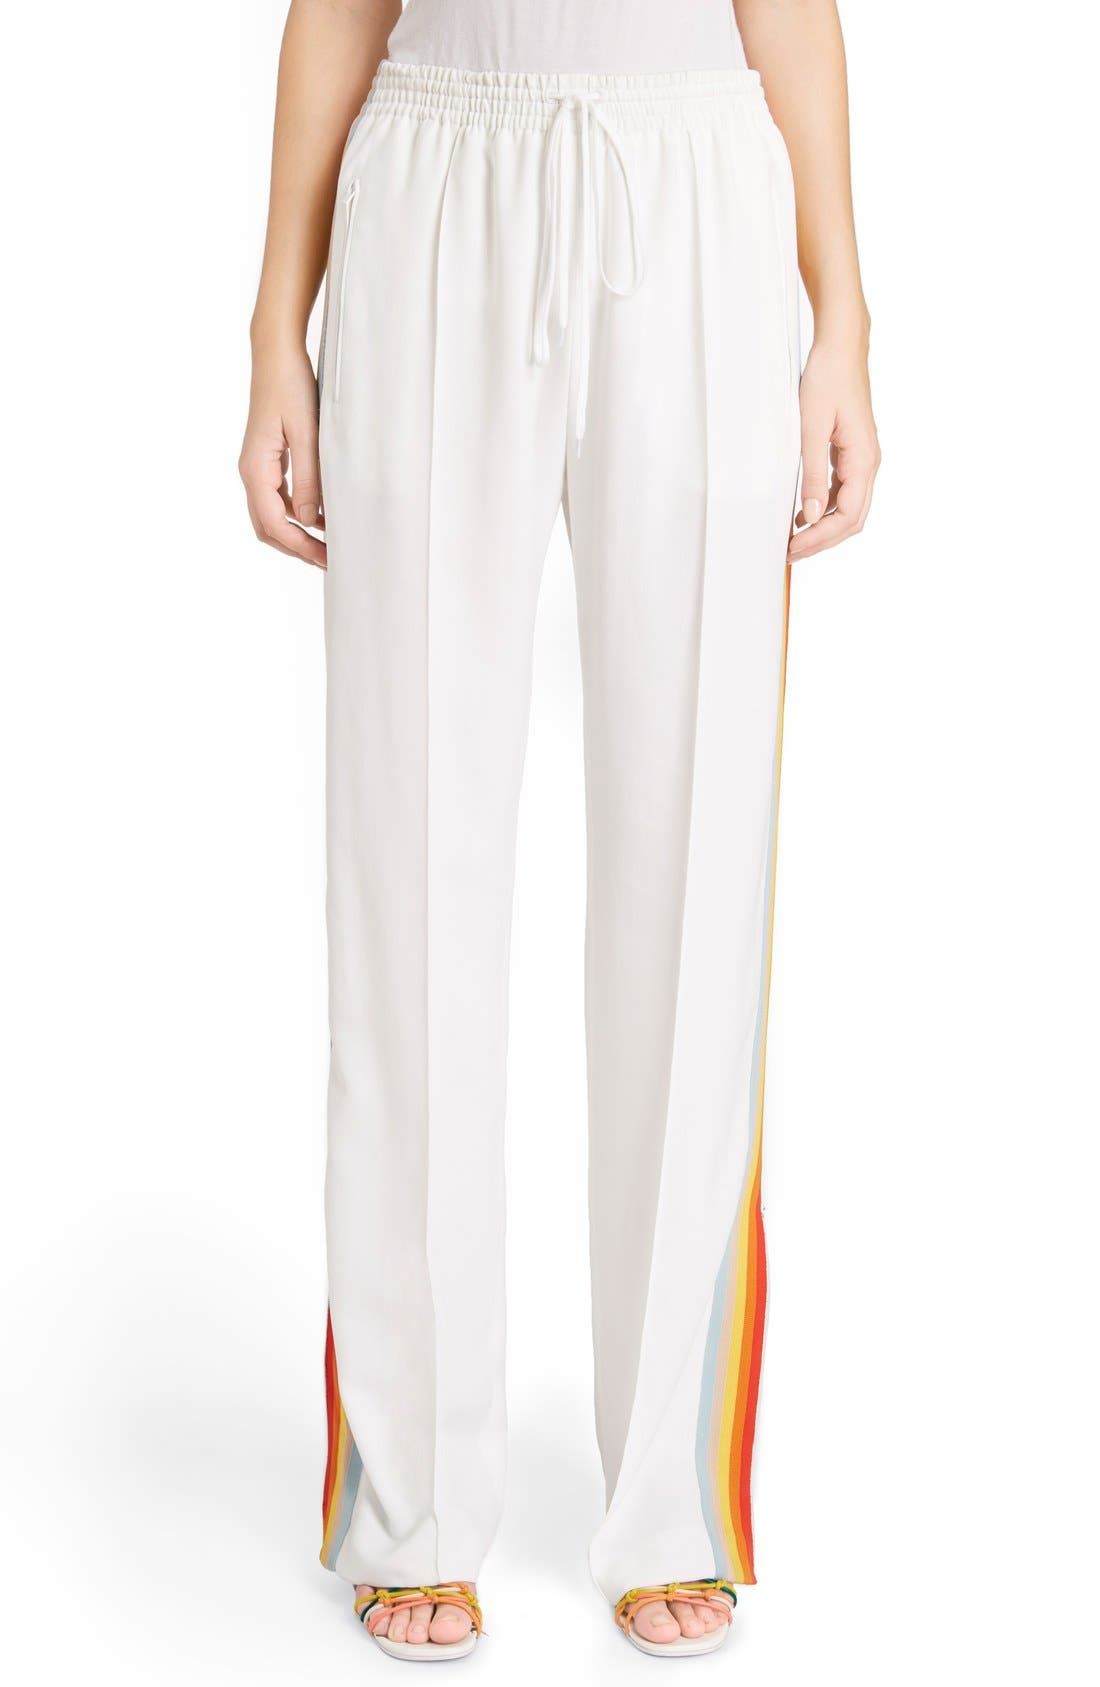 Rainbow Stripe Track Pants,                         Main,                         color, White/ Rainbow